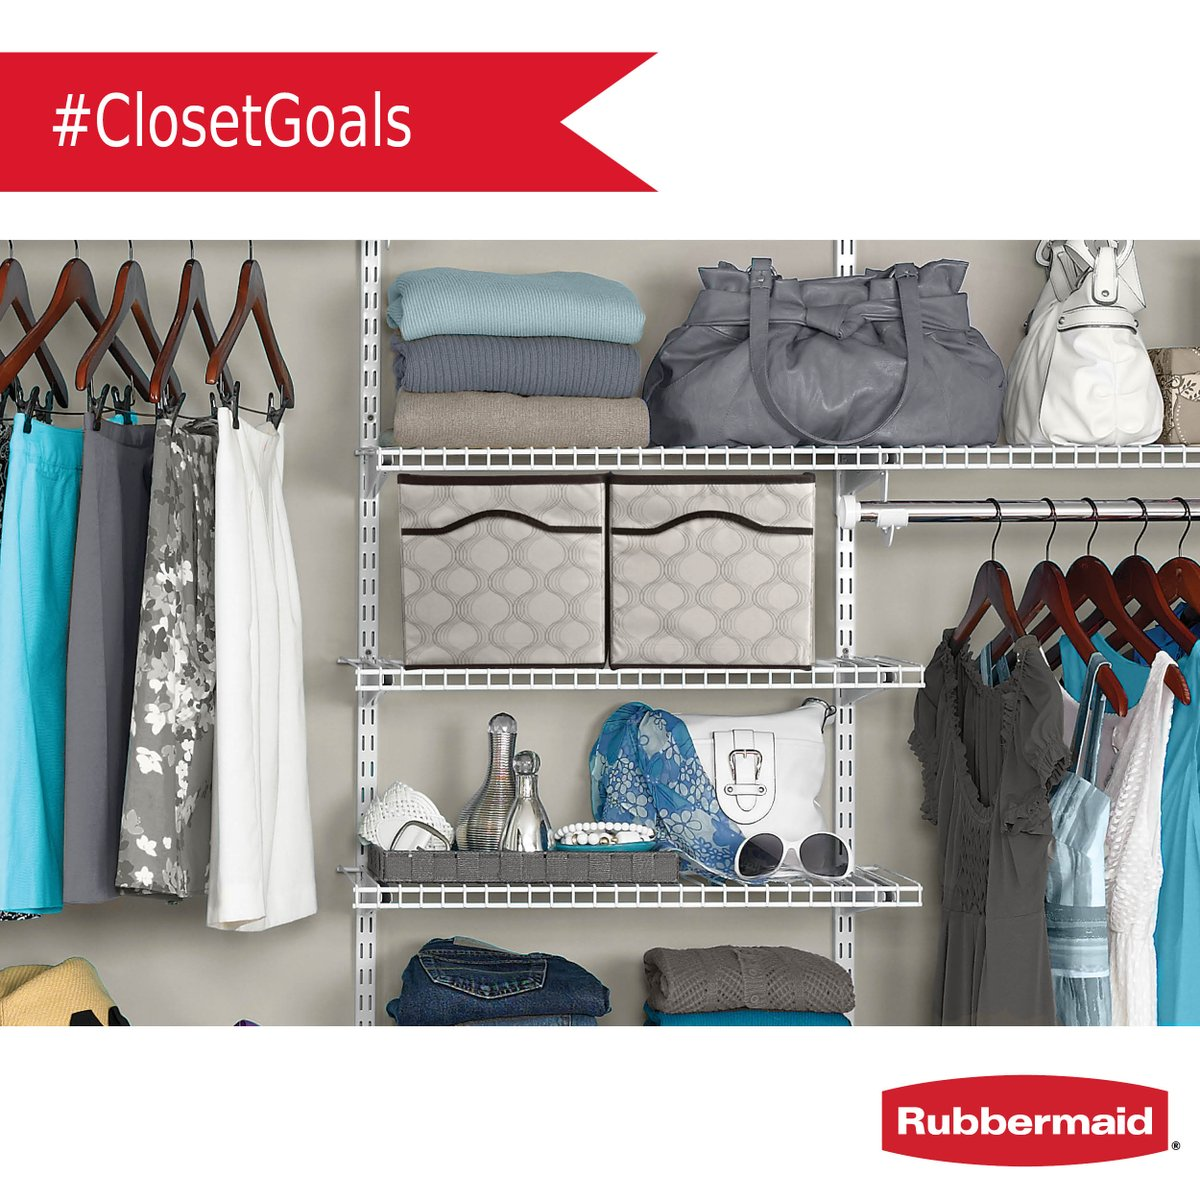 Rubbermaid On Twitter Your Dream Closet Is In Reach Thanks